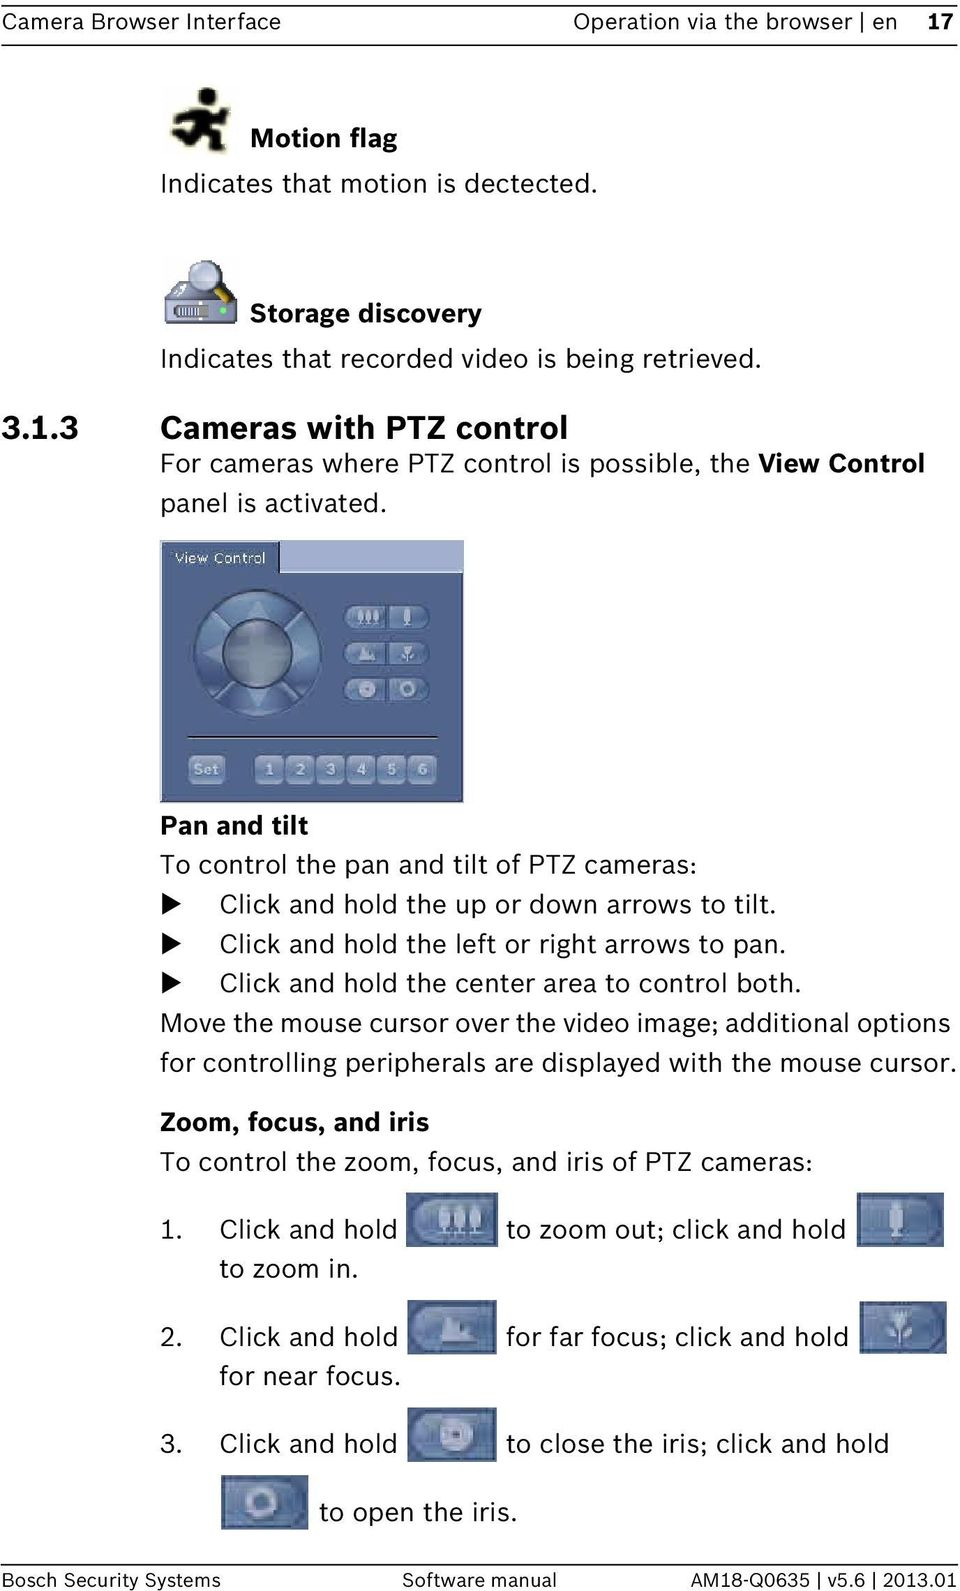 Move the mouse cursor over the video image; additional options for controlling peripherals are displayed with the mouse cursor.